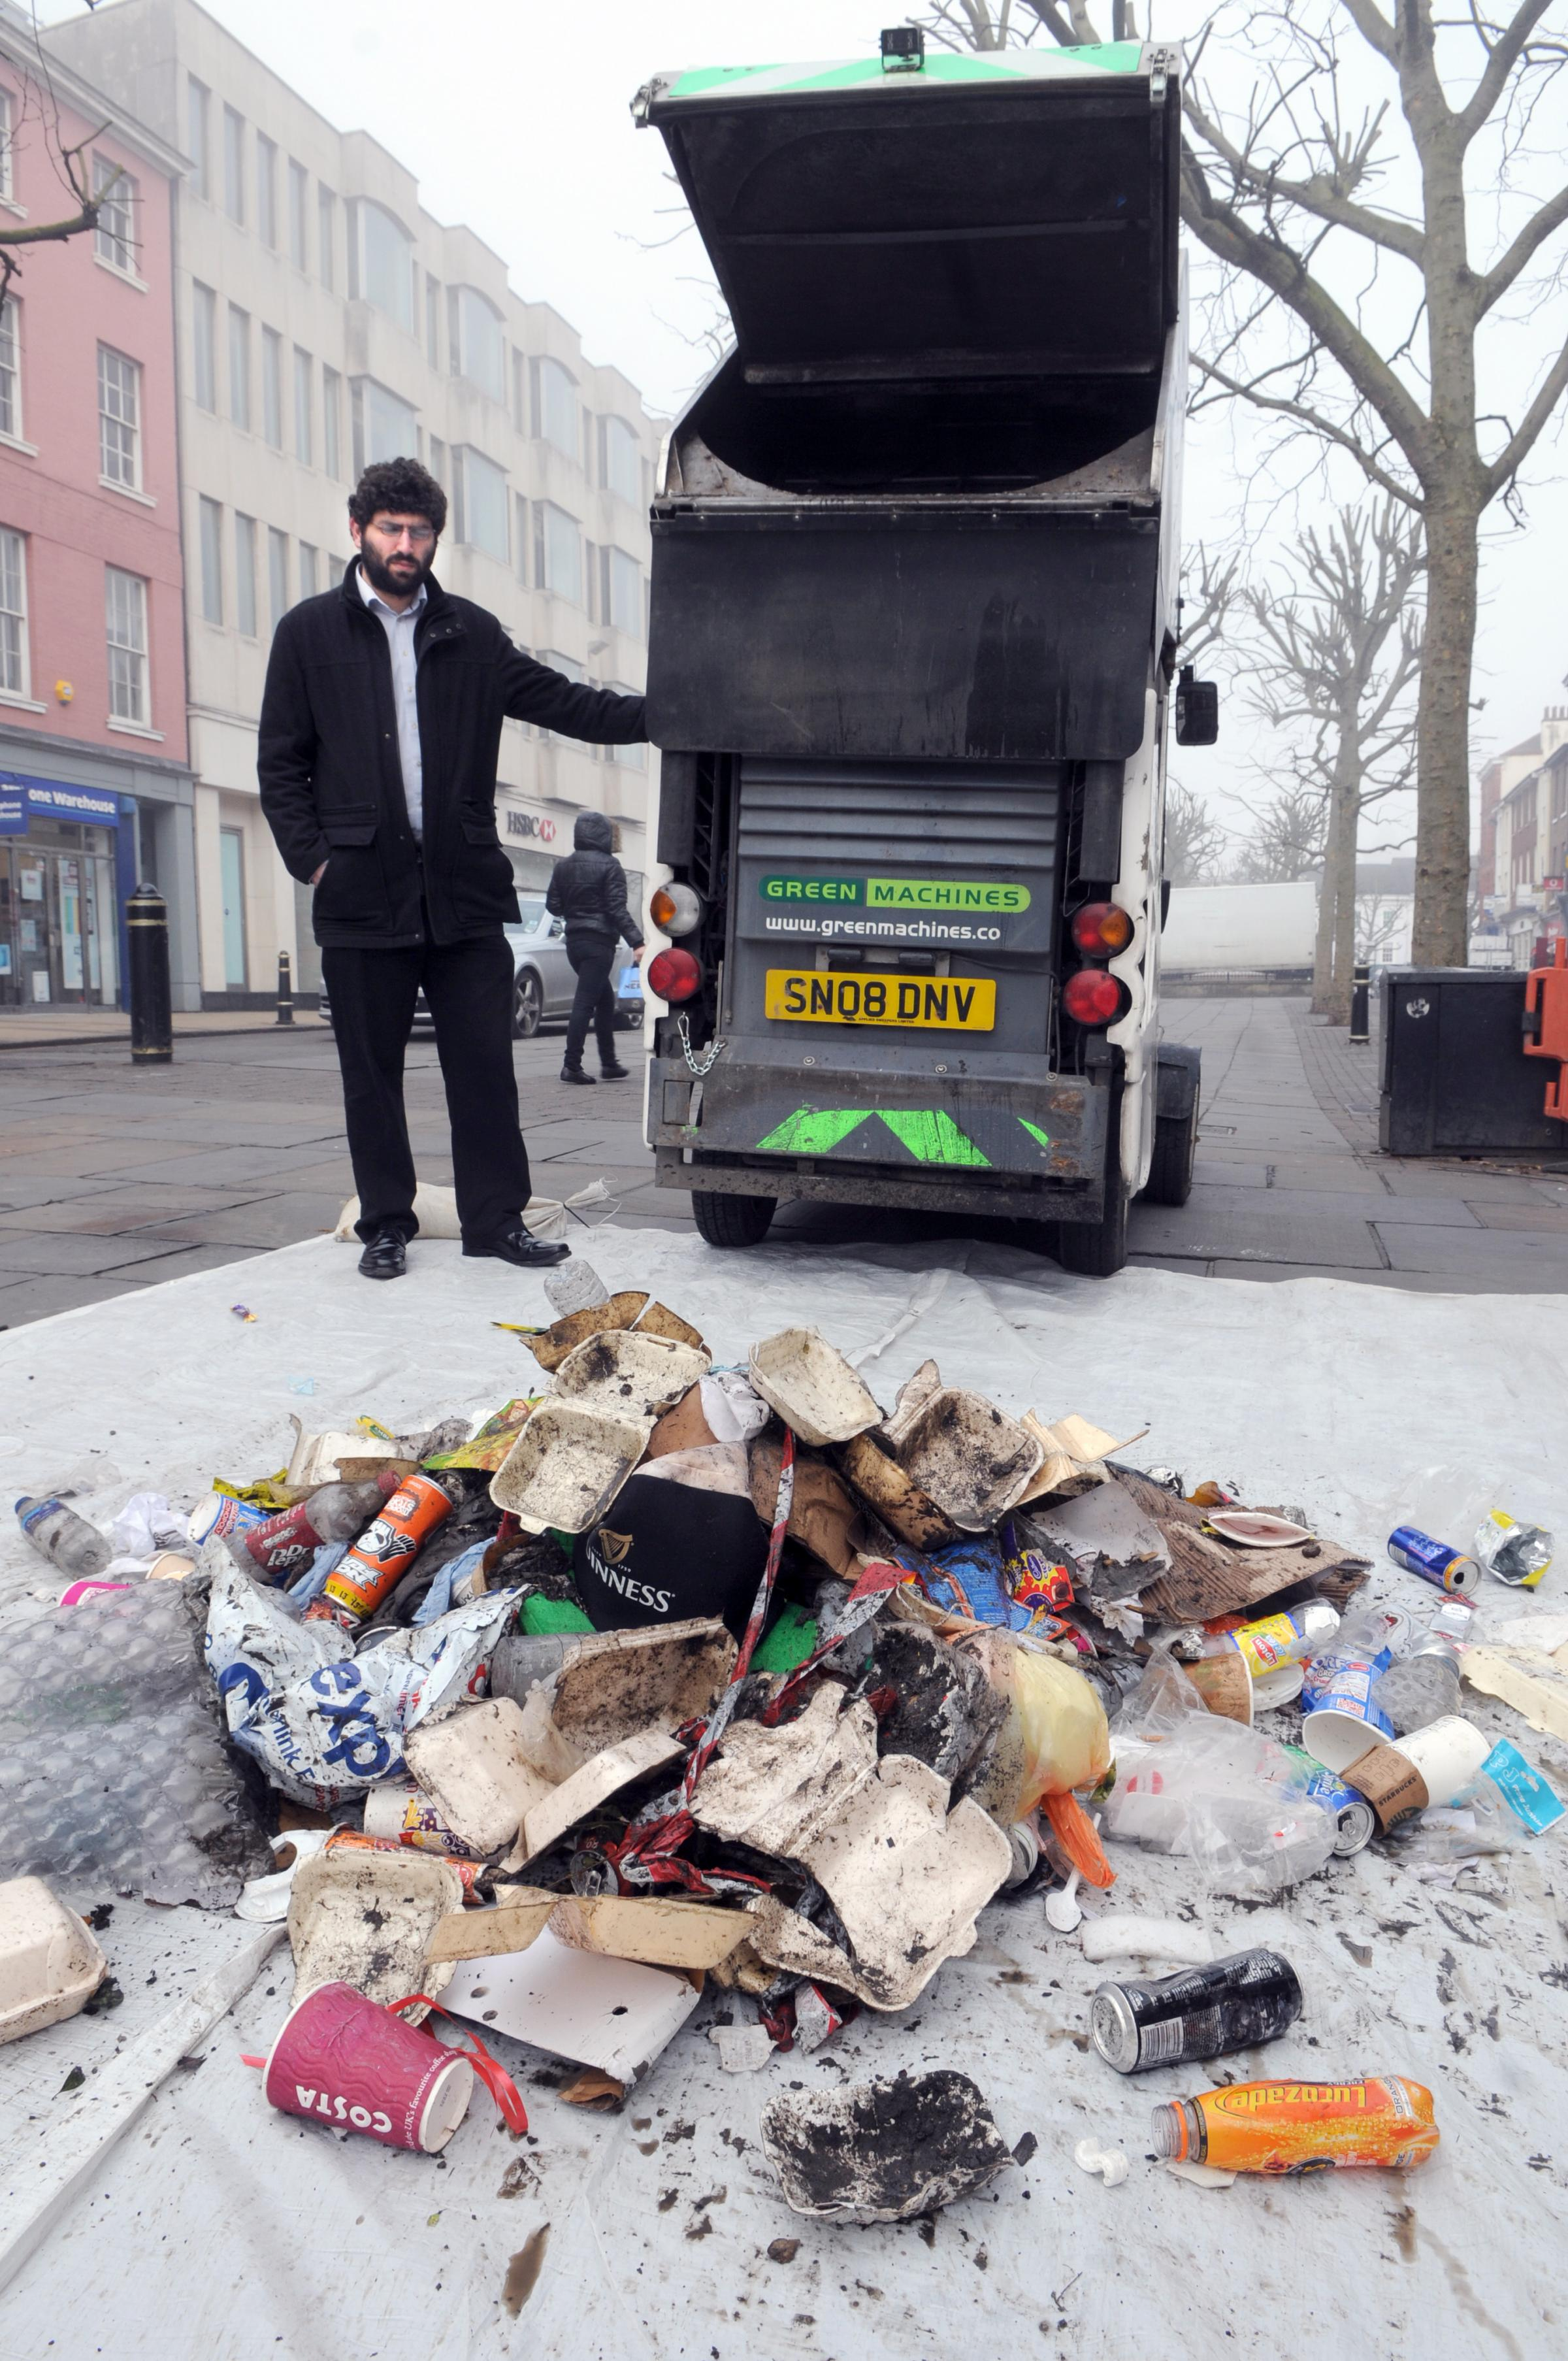 Coun David Levene, City of York Council's cabinet member for Environmental Services, views the litter collected by one mechanical sweeper, on display in Parliament Street